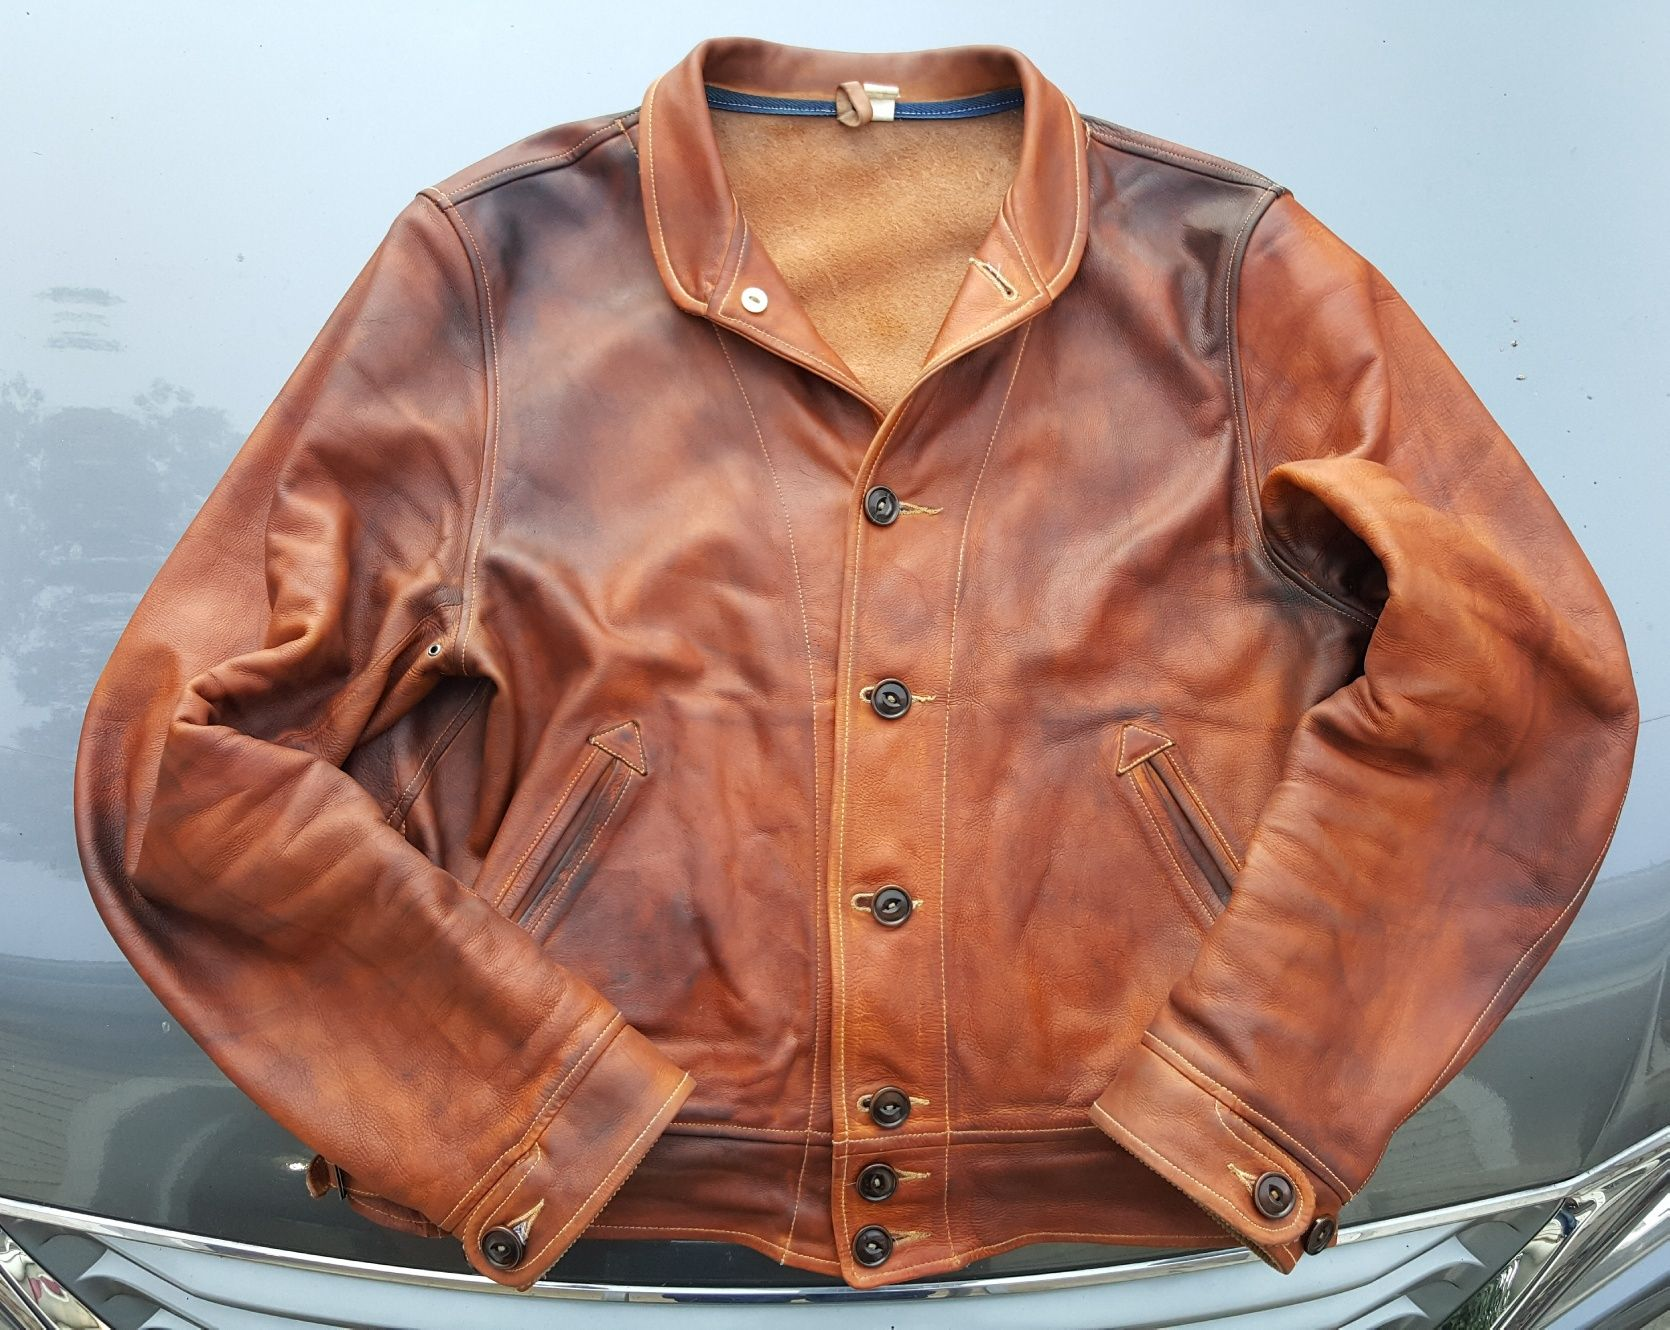 Mister Freedom Campus Leather Jacket Natural Full Grain Cowhide Well Aged Leather Jacket Jackets Leather